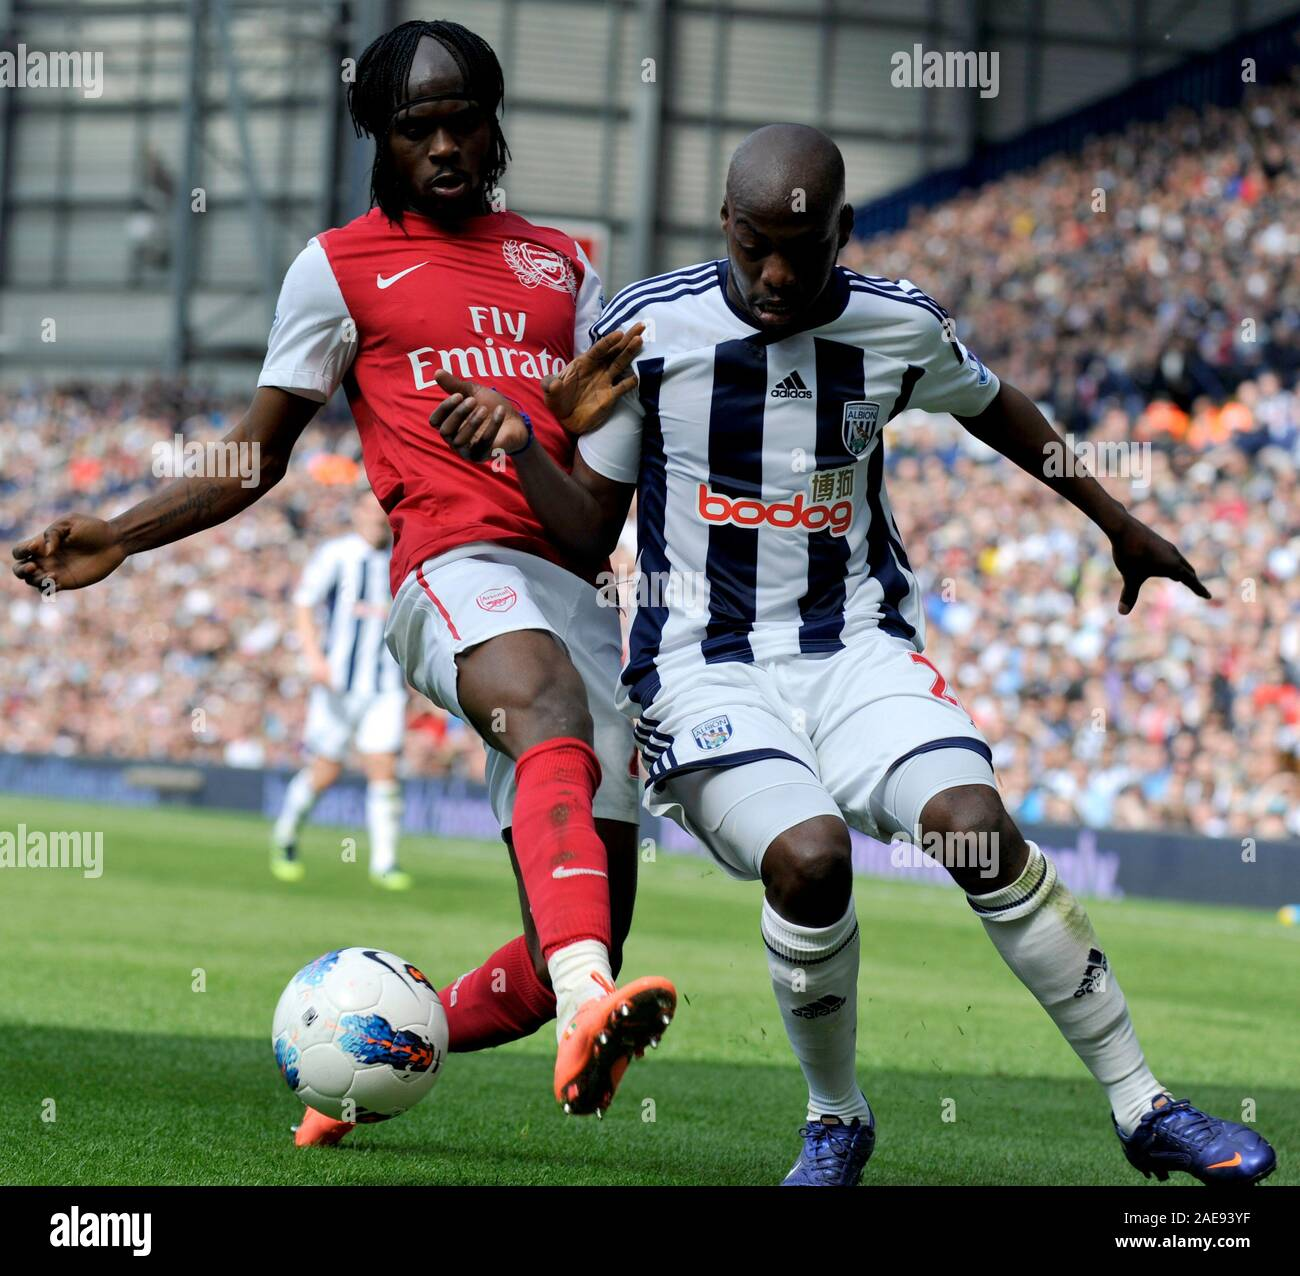 13th May 2012 Soccer Premiership Football West Bromwich Albion Vs Arsenal Arsenal S Gervinho Challenges Youssouf Mulumbu Of West Bromwich Albion Photographer Paul Roberts Oneuptop Alamy Stock Photo Alamy